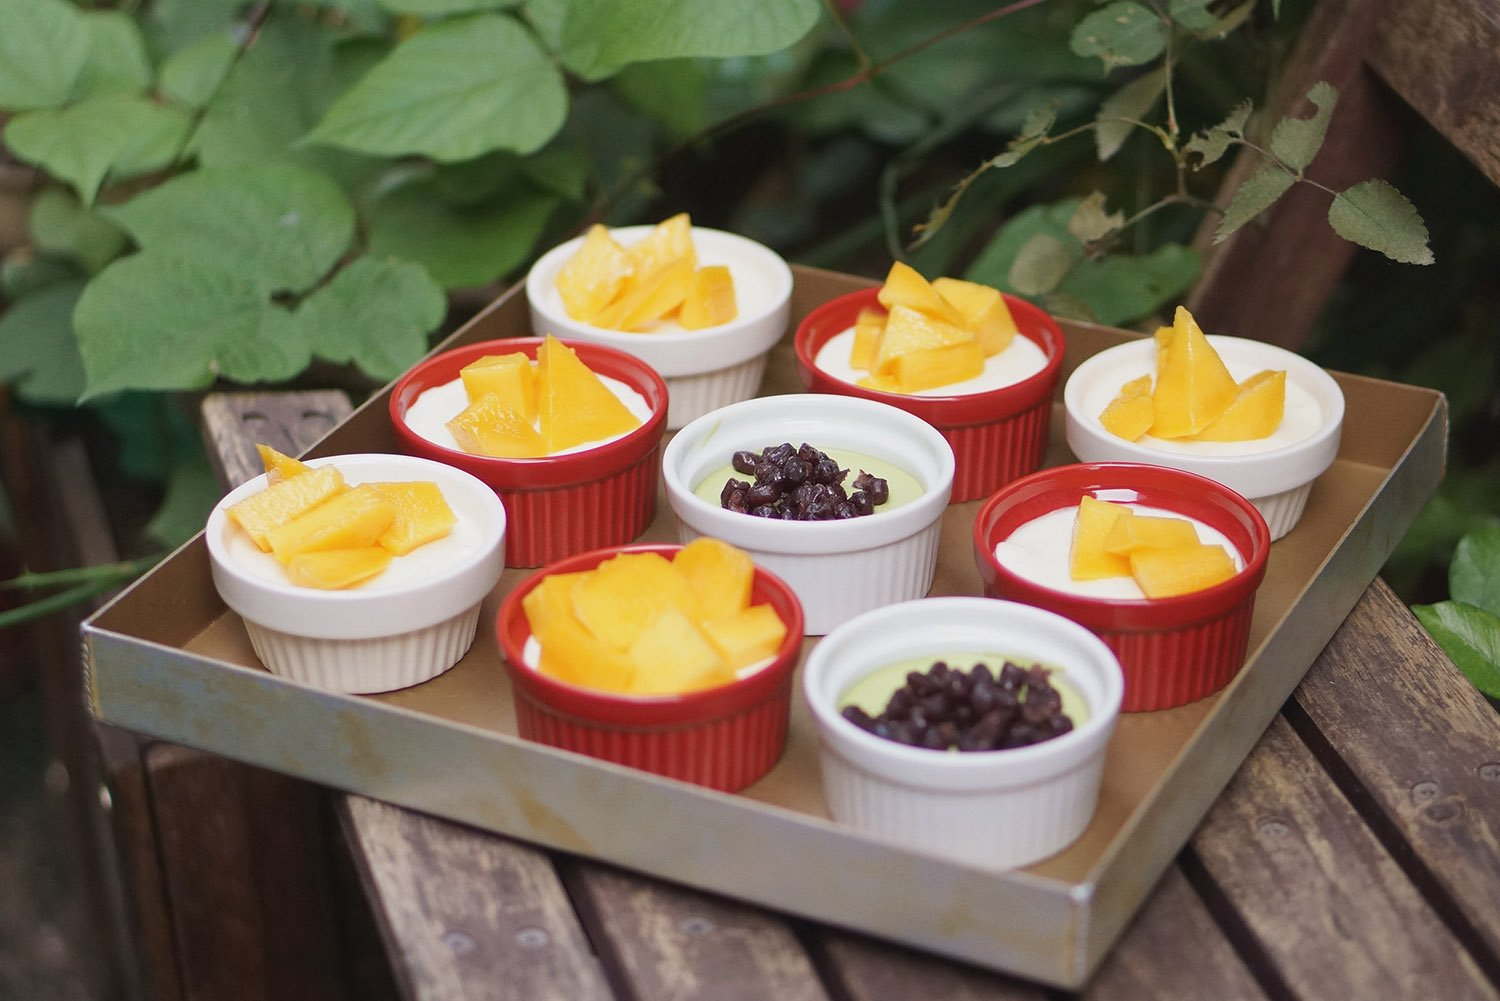 Cinf  Porcelain Ramekin Red 4 oz. Pudding Bowls Dishes Cup For Baking, Set Of 6 by Cinf (Image #6)